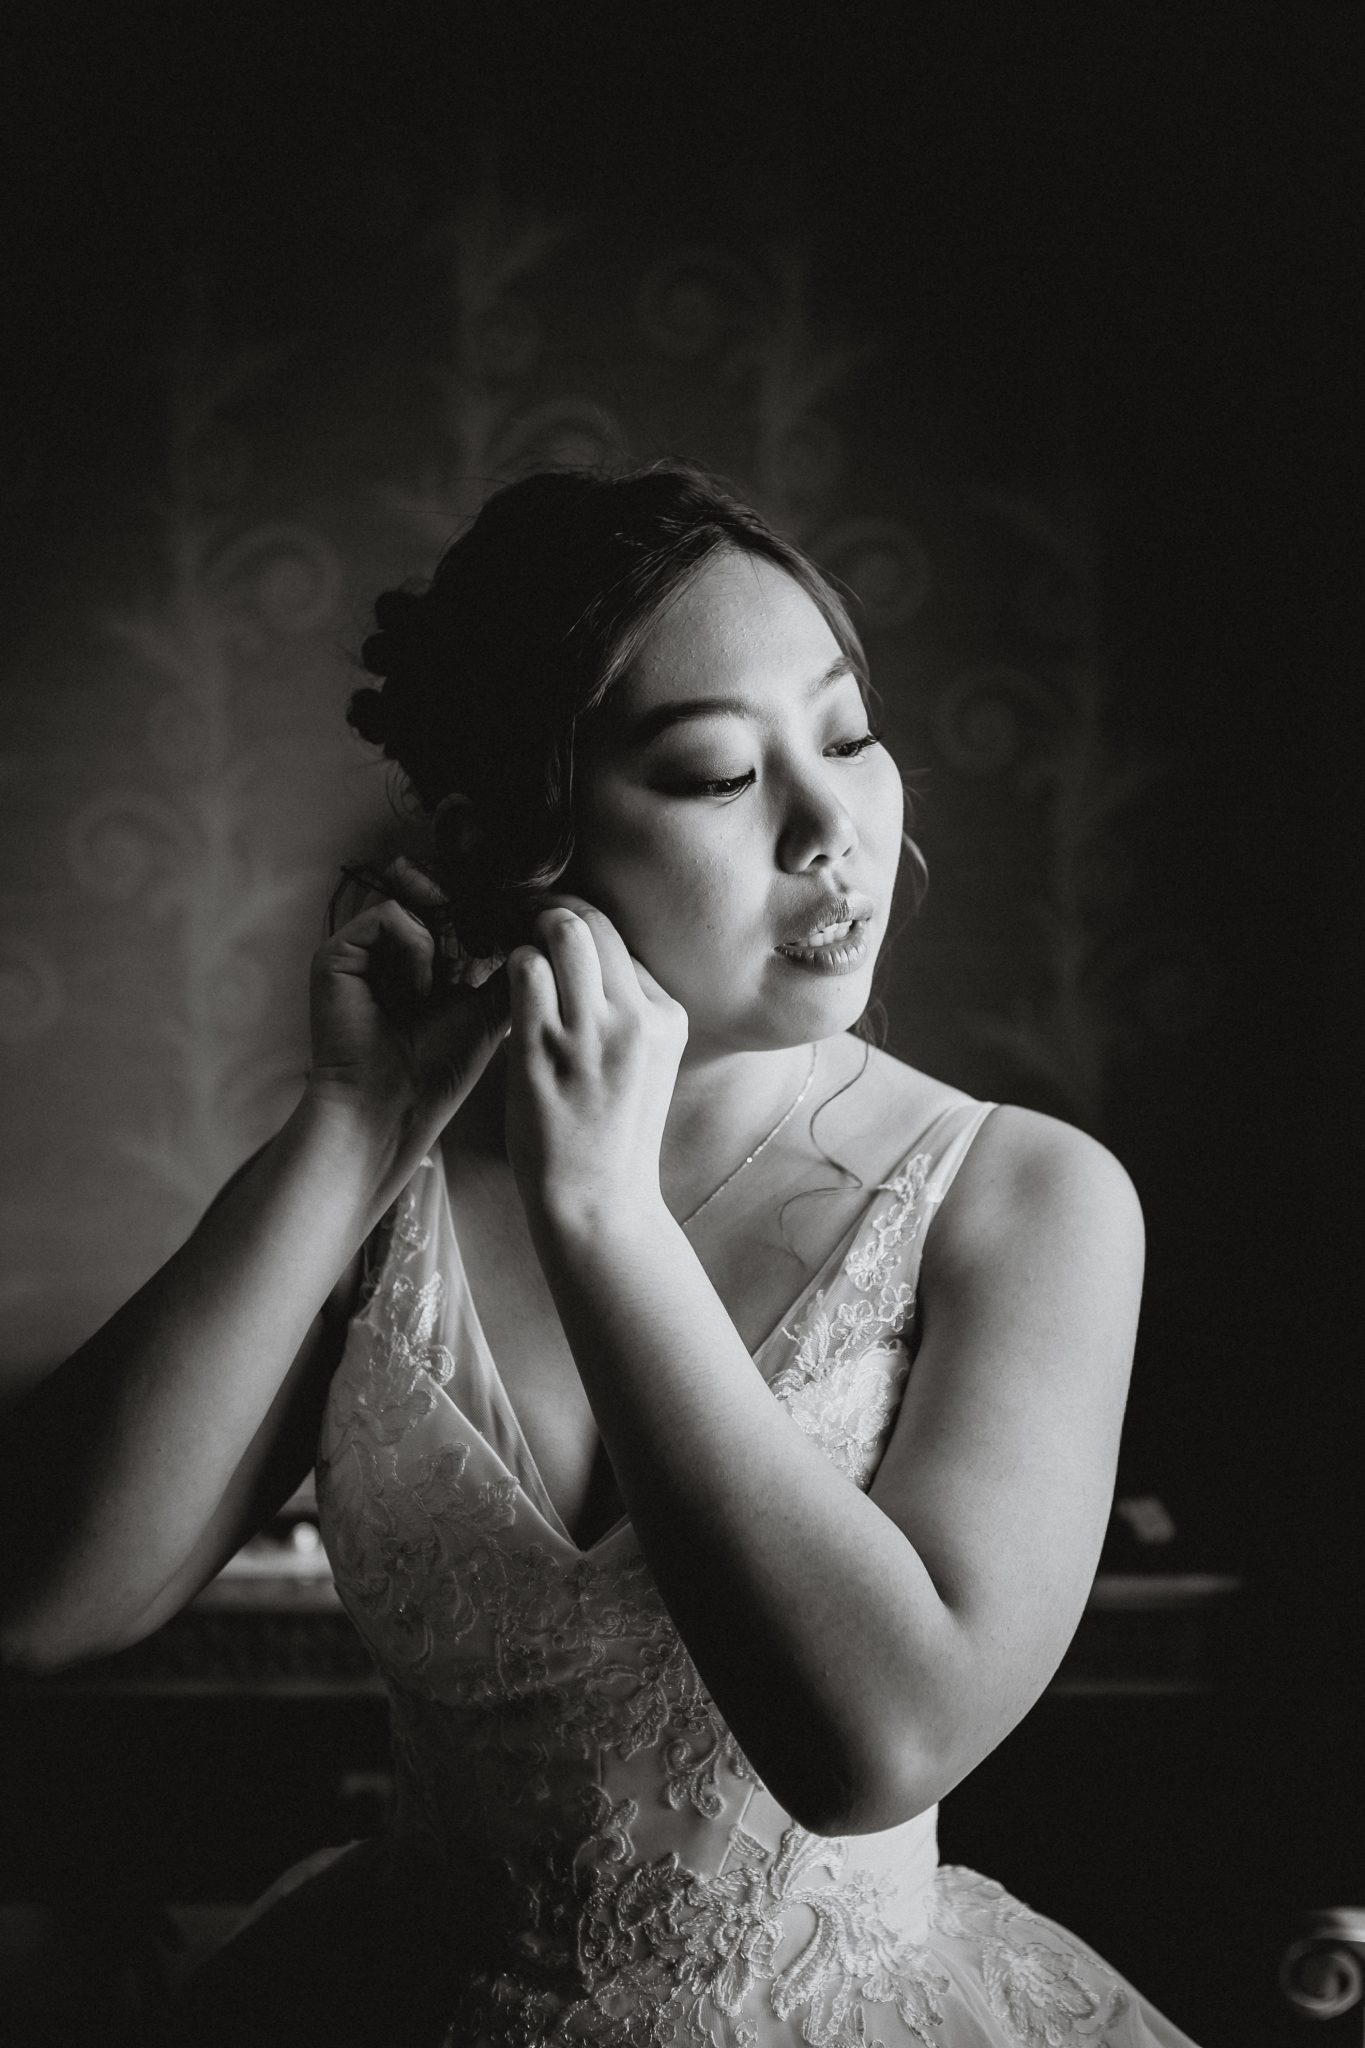 Black and white portrait of a bride putting her earrings on in a hotel room